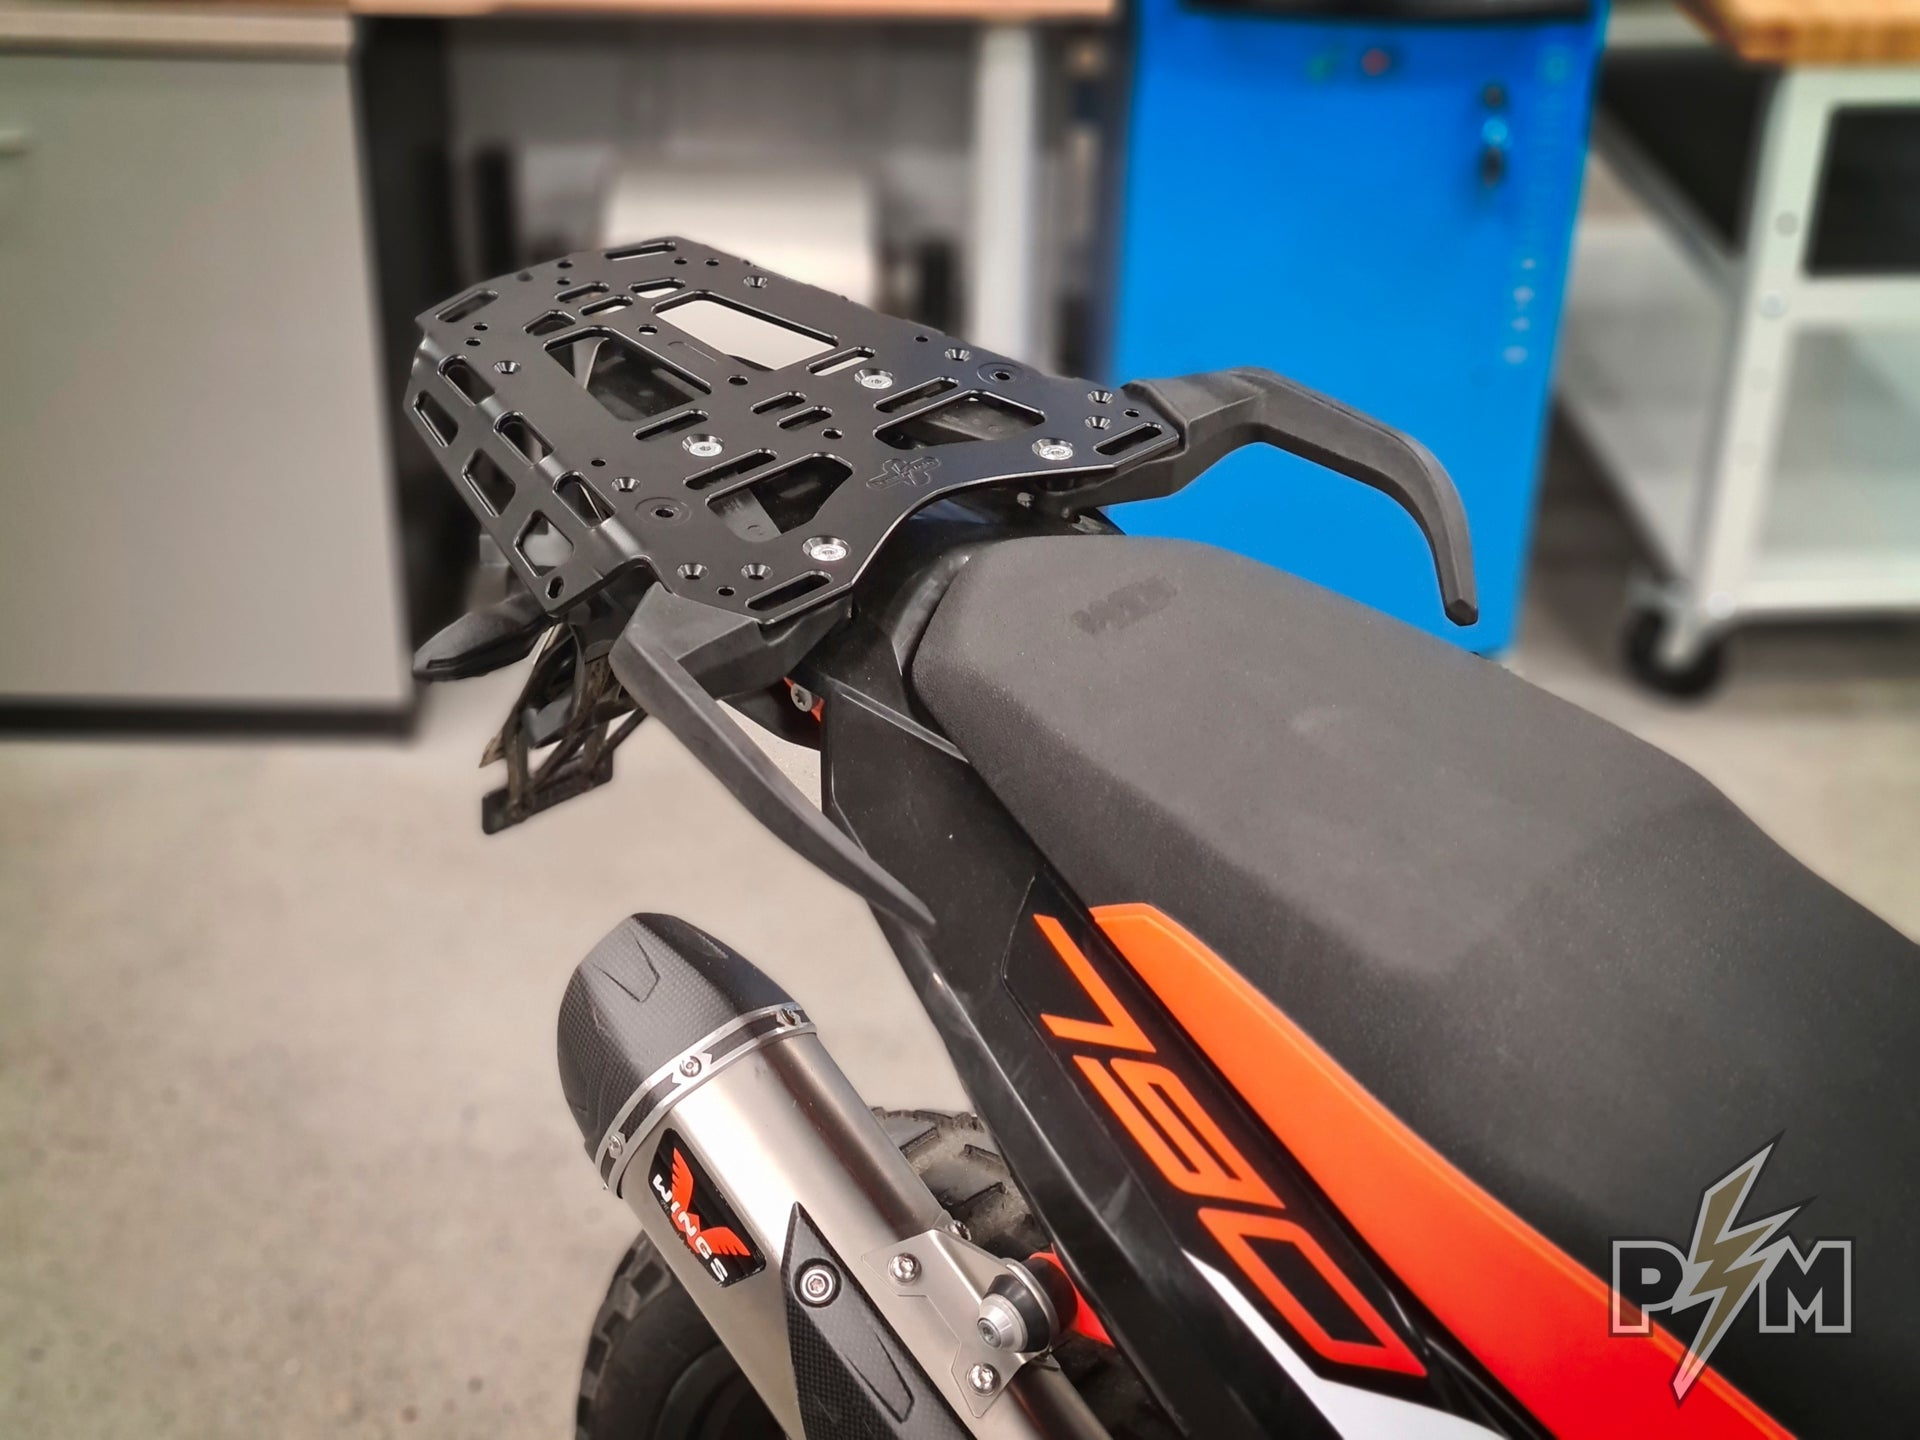 New and improved KTM 790/890 Top luggage rack!